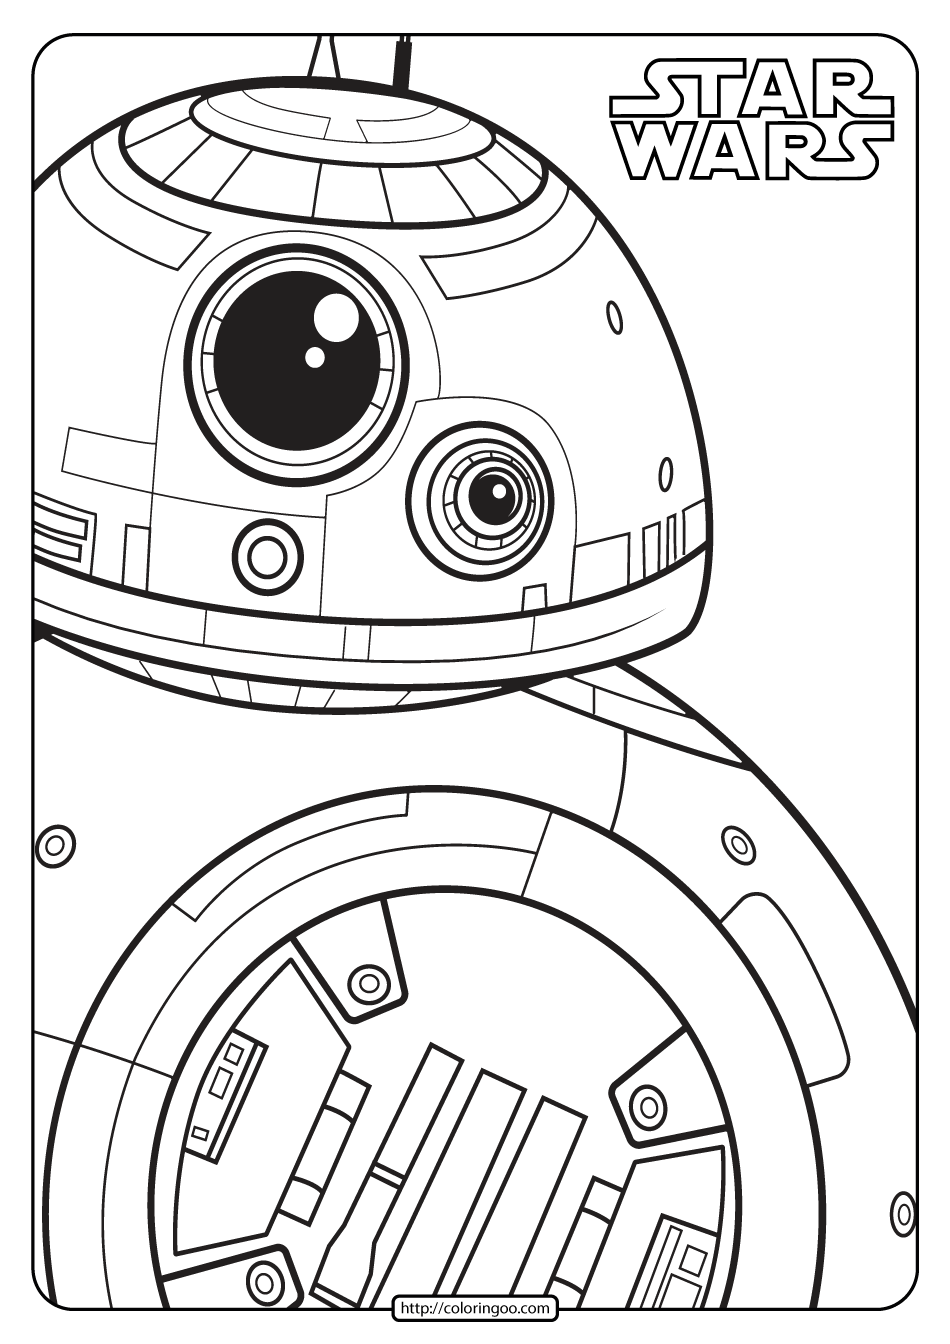 Printable Star Wars Bb 8 Coloring Pages Star Wars Coloring Book Printable Star Star Wars Drawings